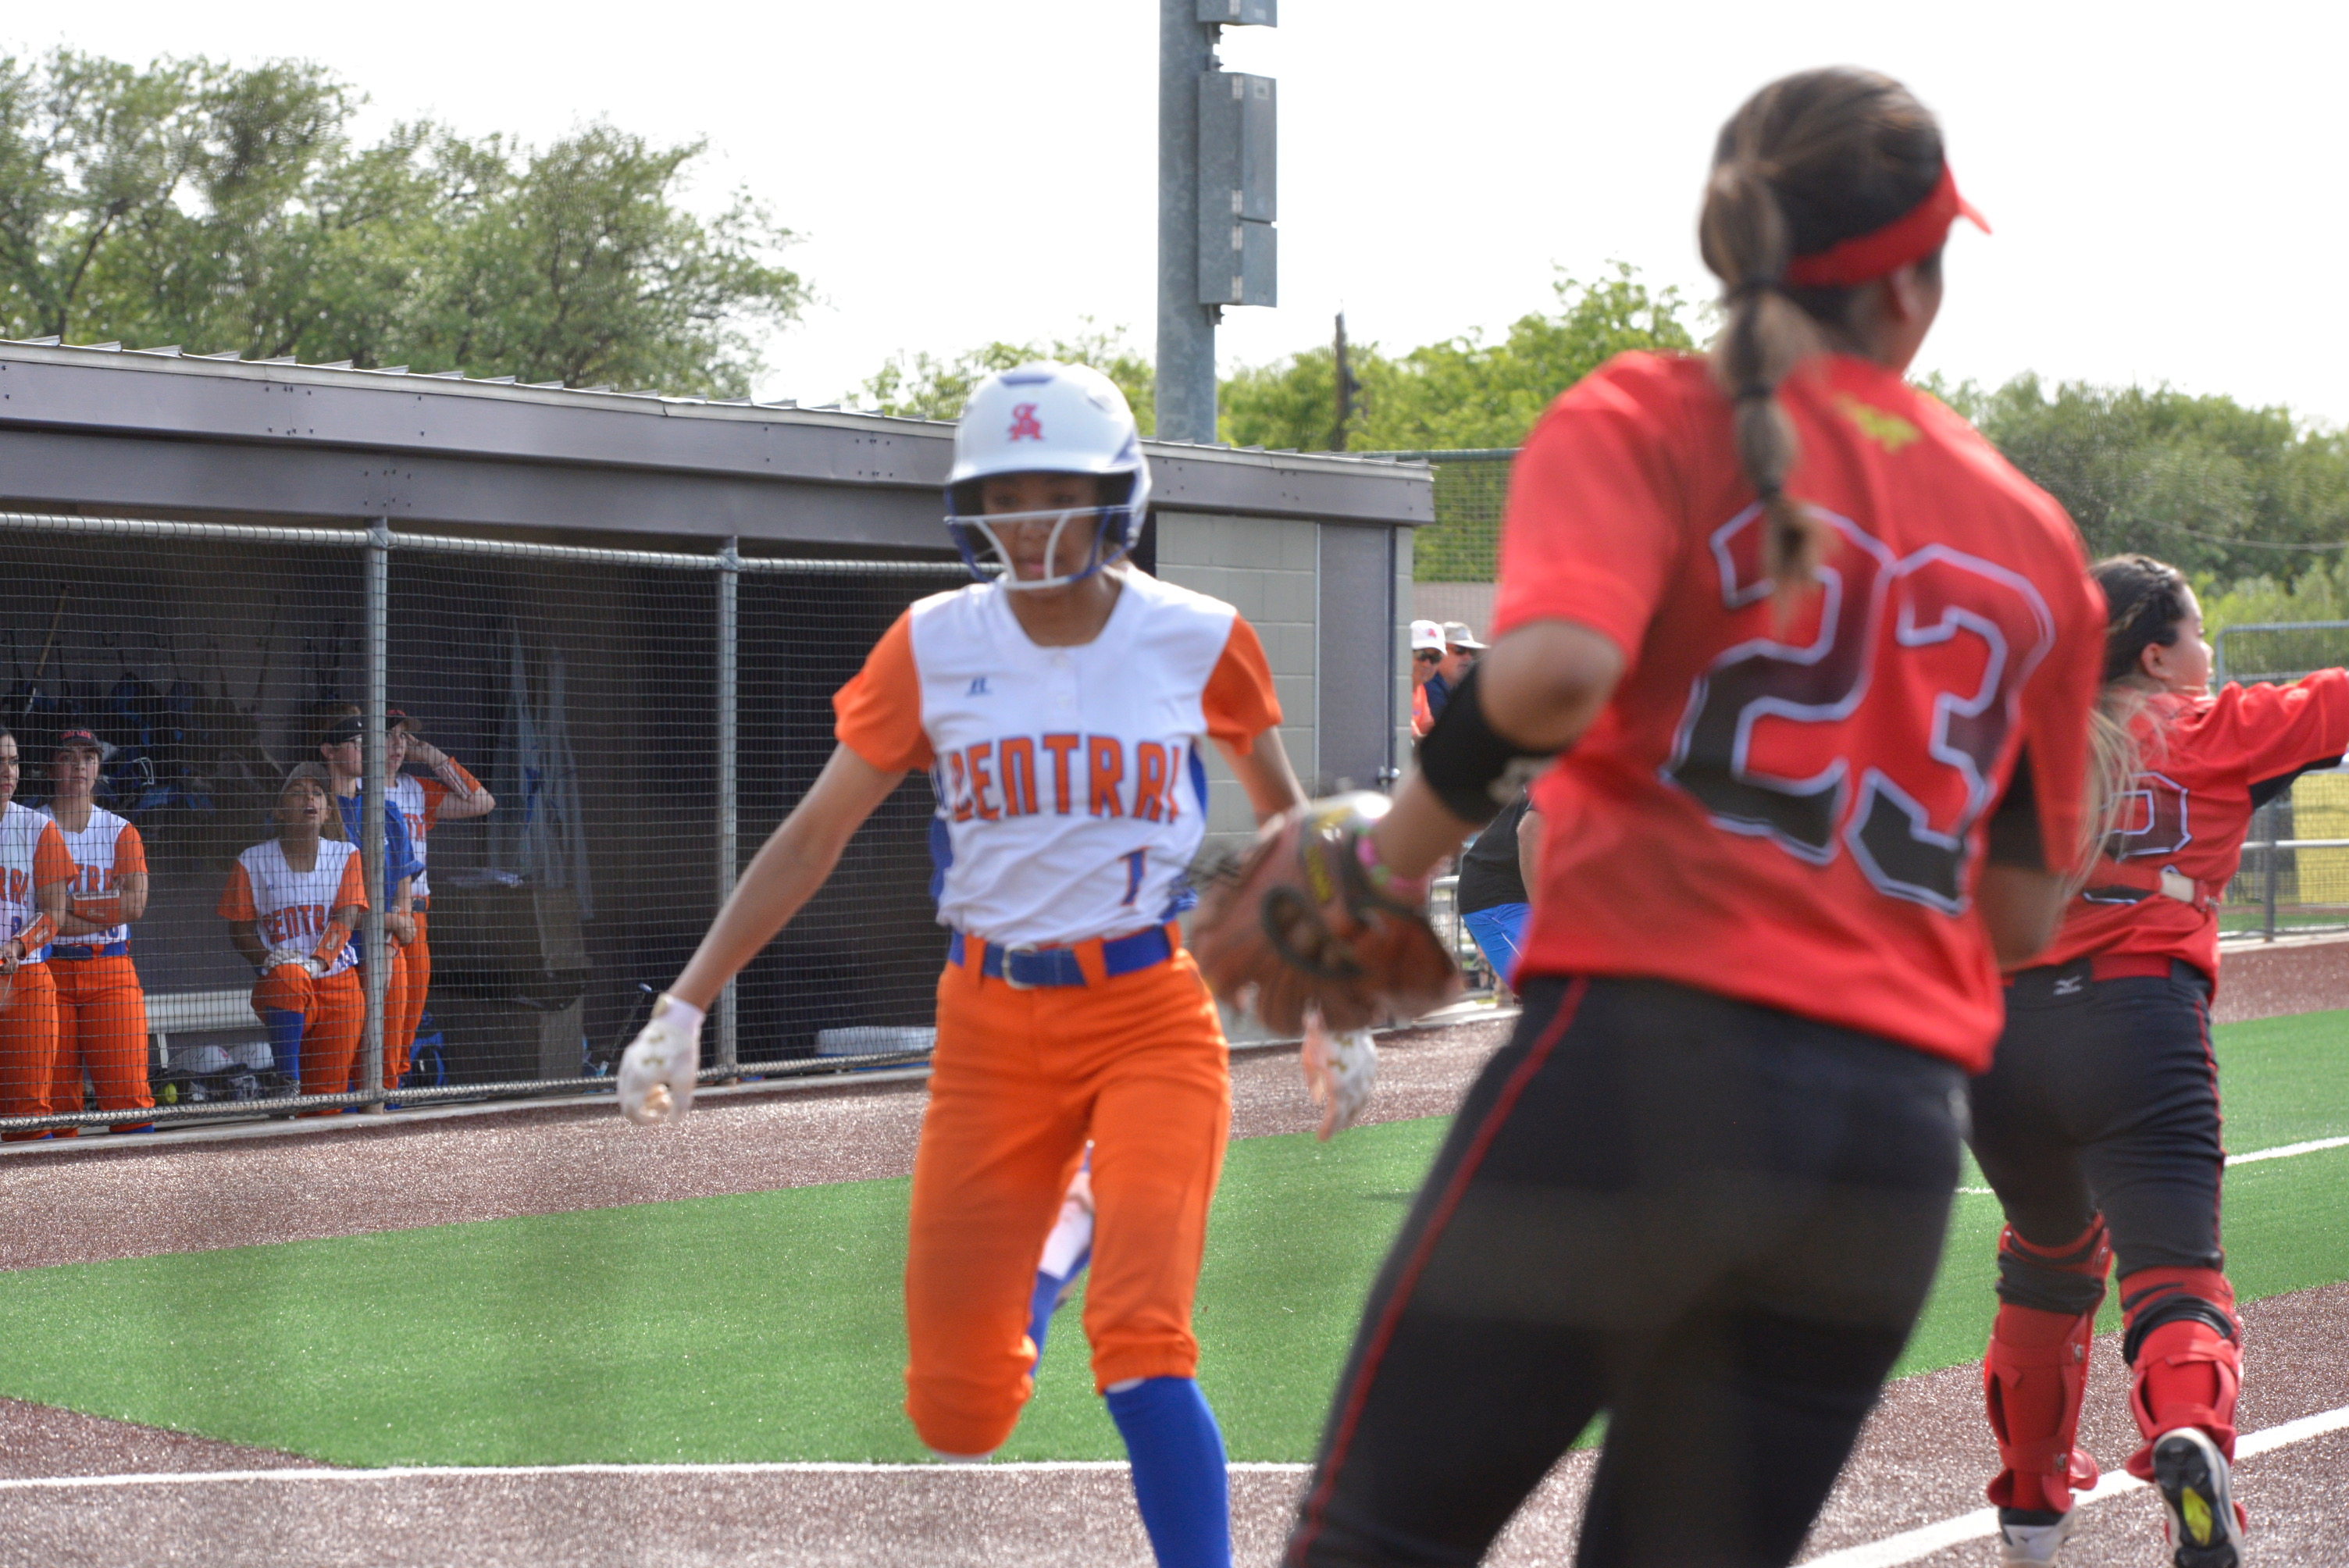 Central's Kaleigh Ochinang scores a run against South Grand Prairie in the Bi-District playoff. April 27, 2018 (LIVE! Photo/Sam Fowler)